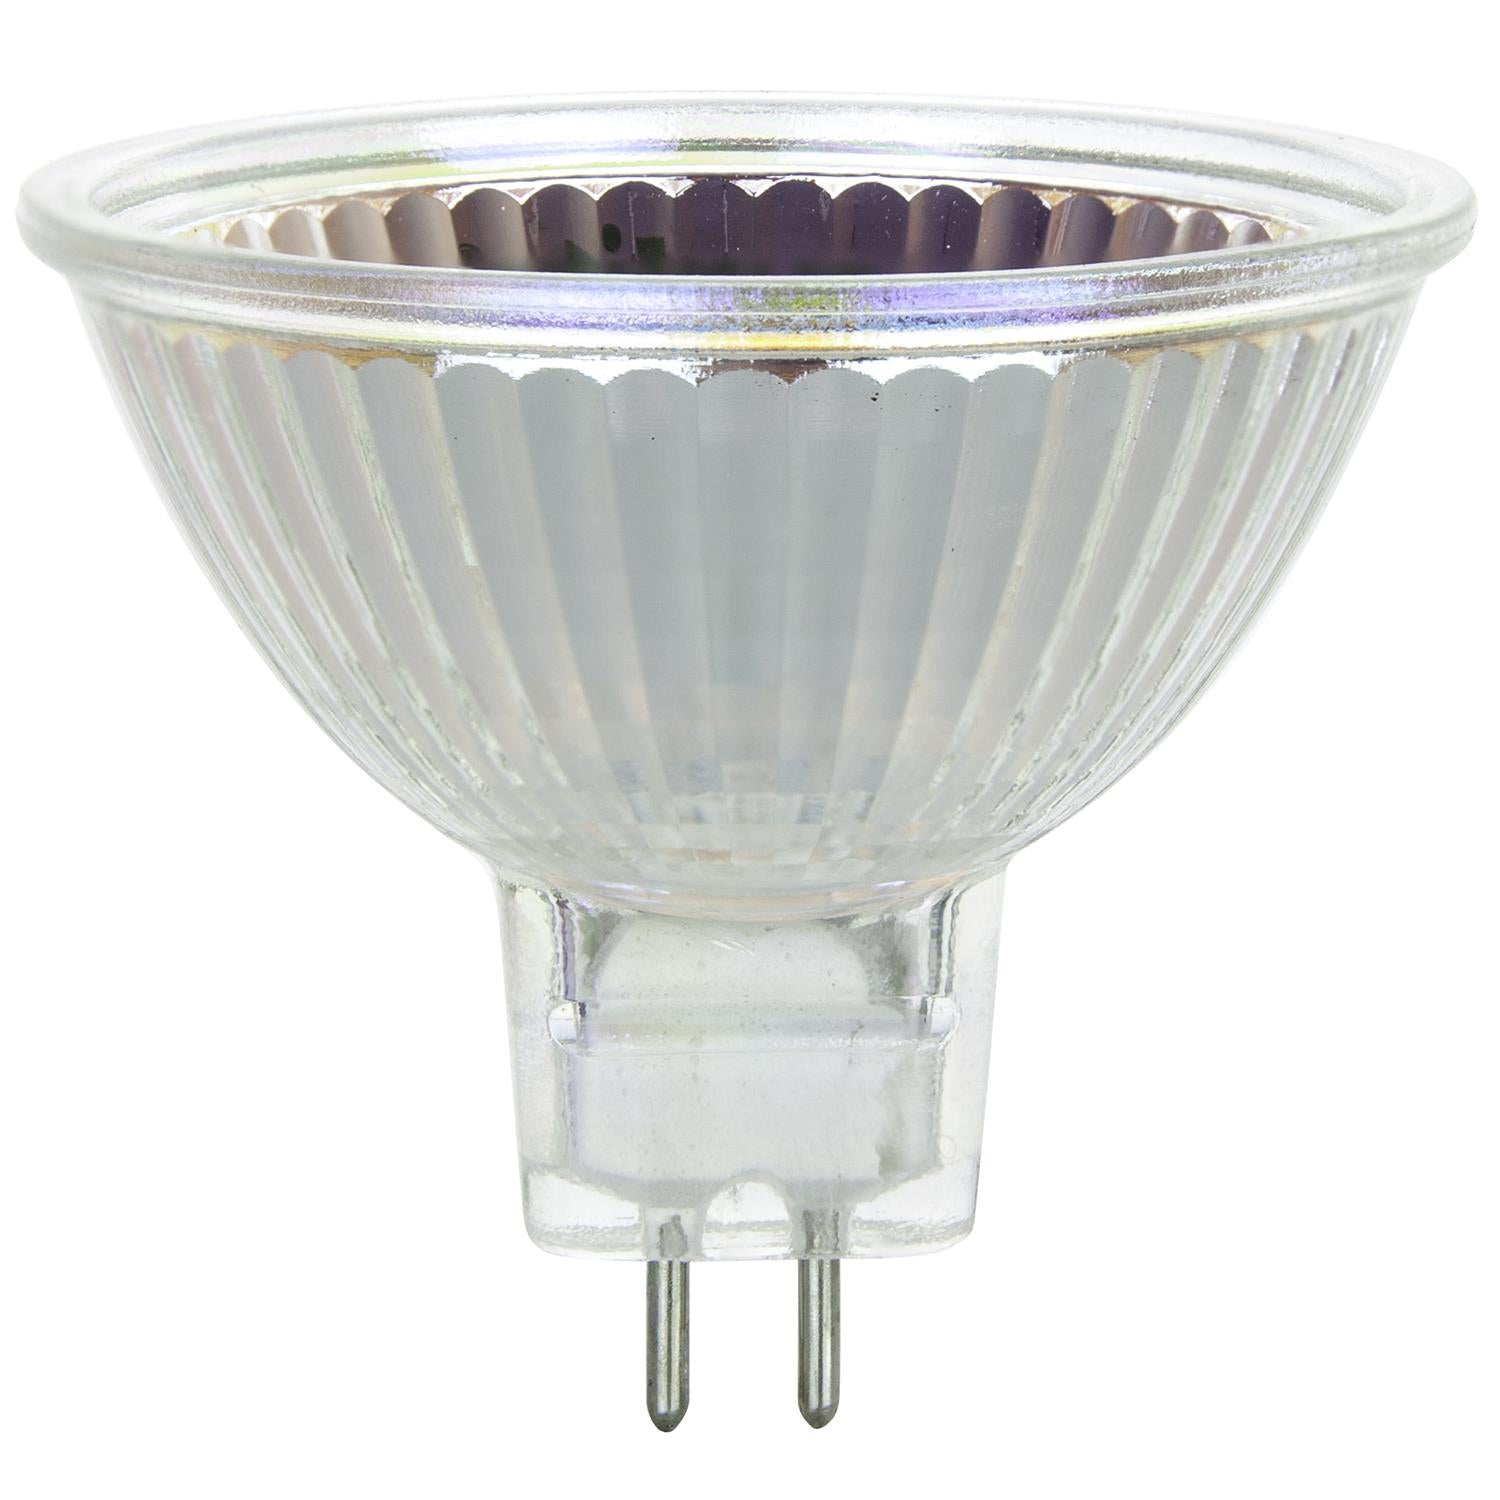 SUNLITE 50w 12v MR16 Flood 38deg. GU5.3 Bi-Pin 3200K Halogen Bulb